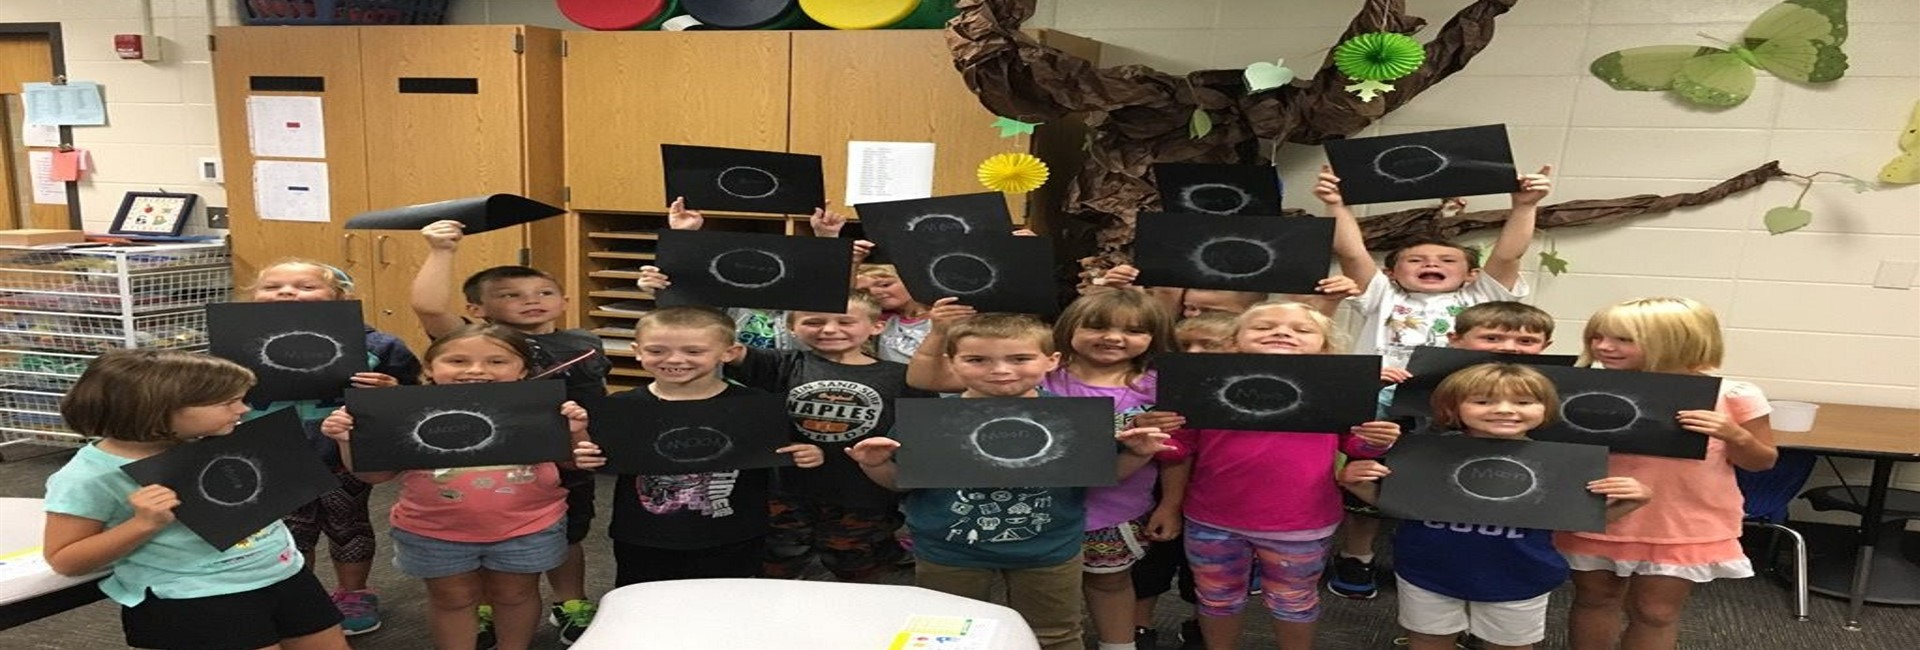 Ms. Phillips' Class Solar Eclipse Project